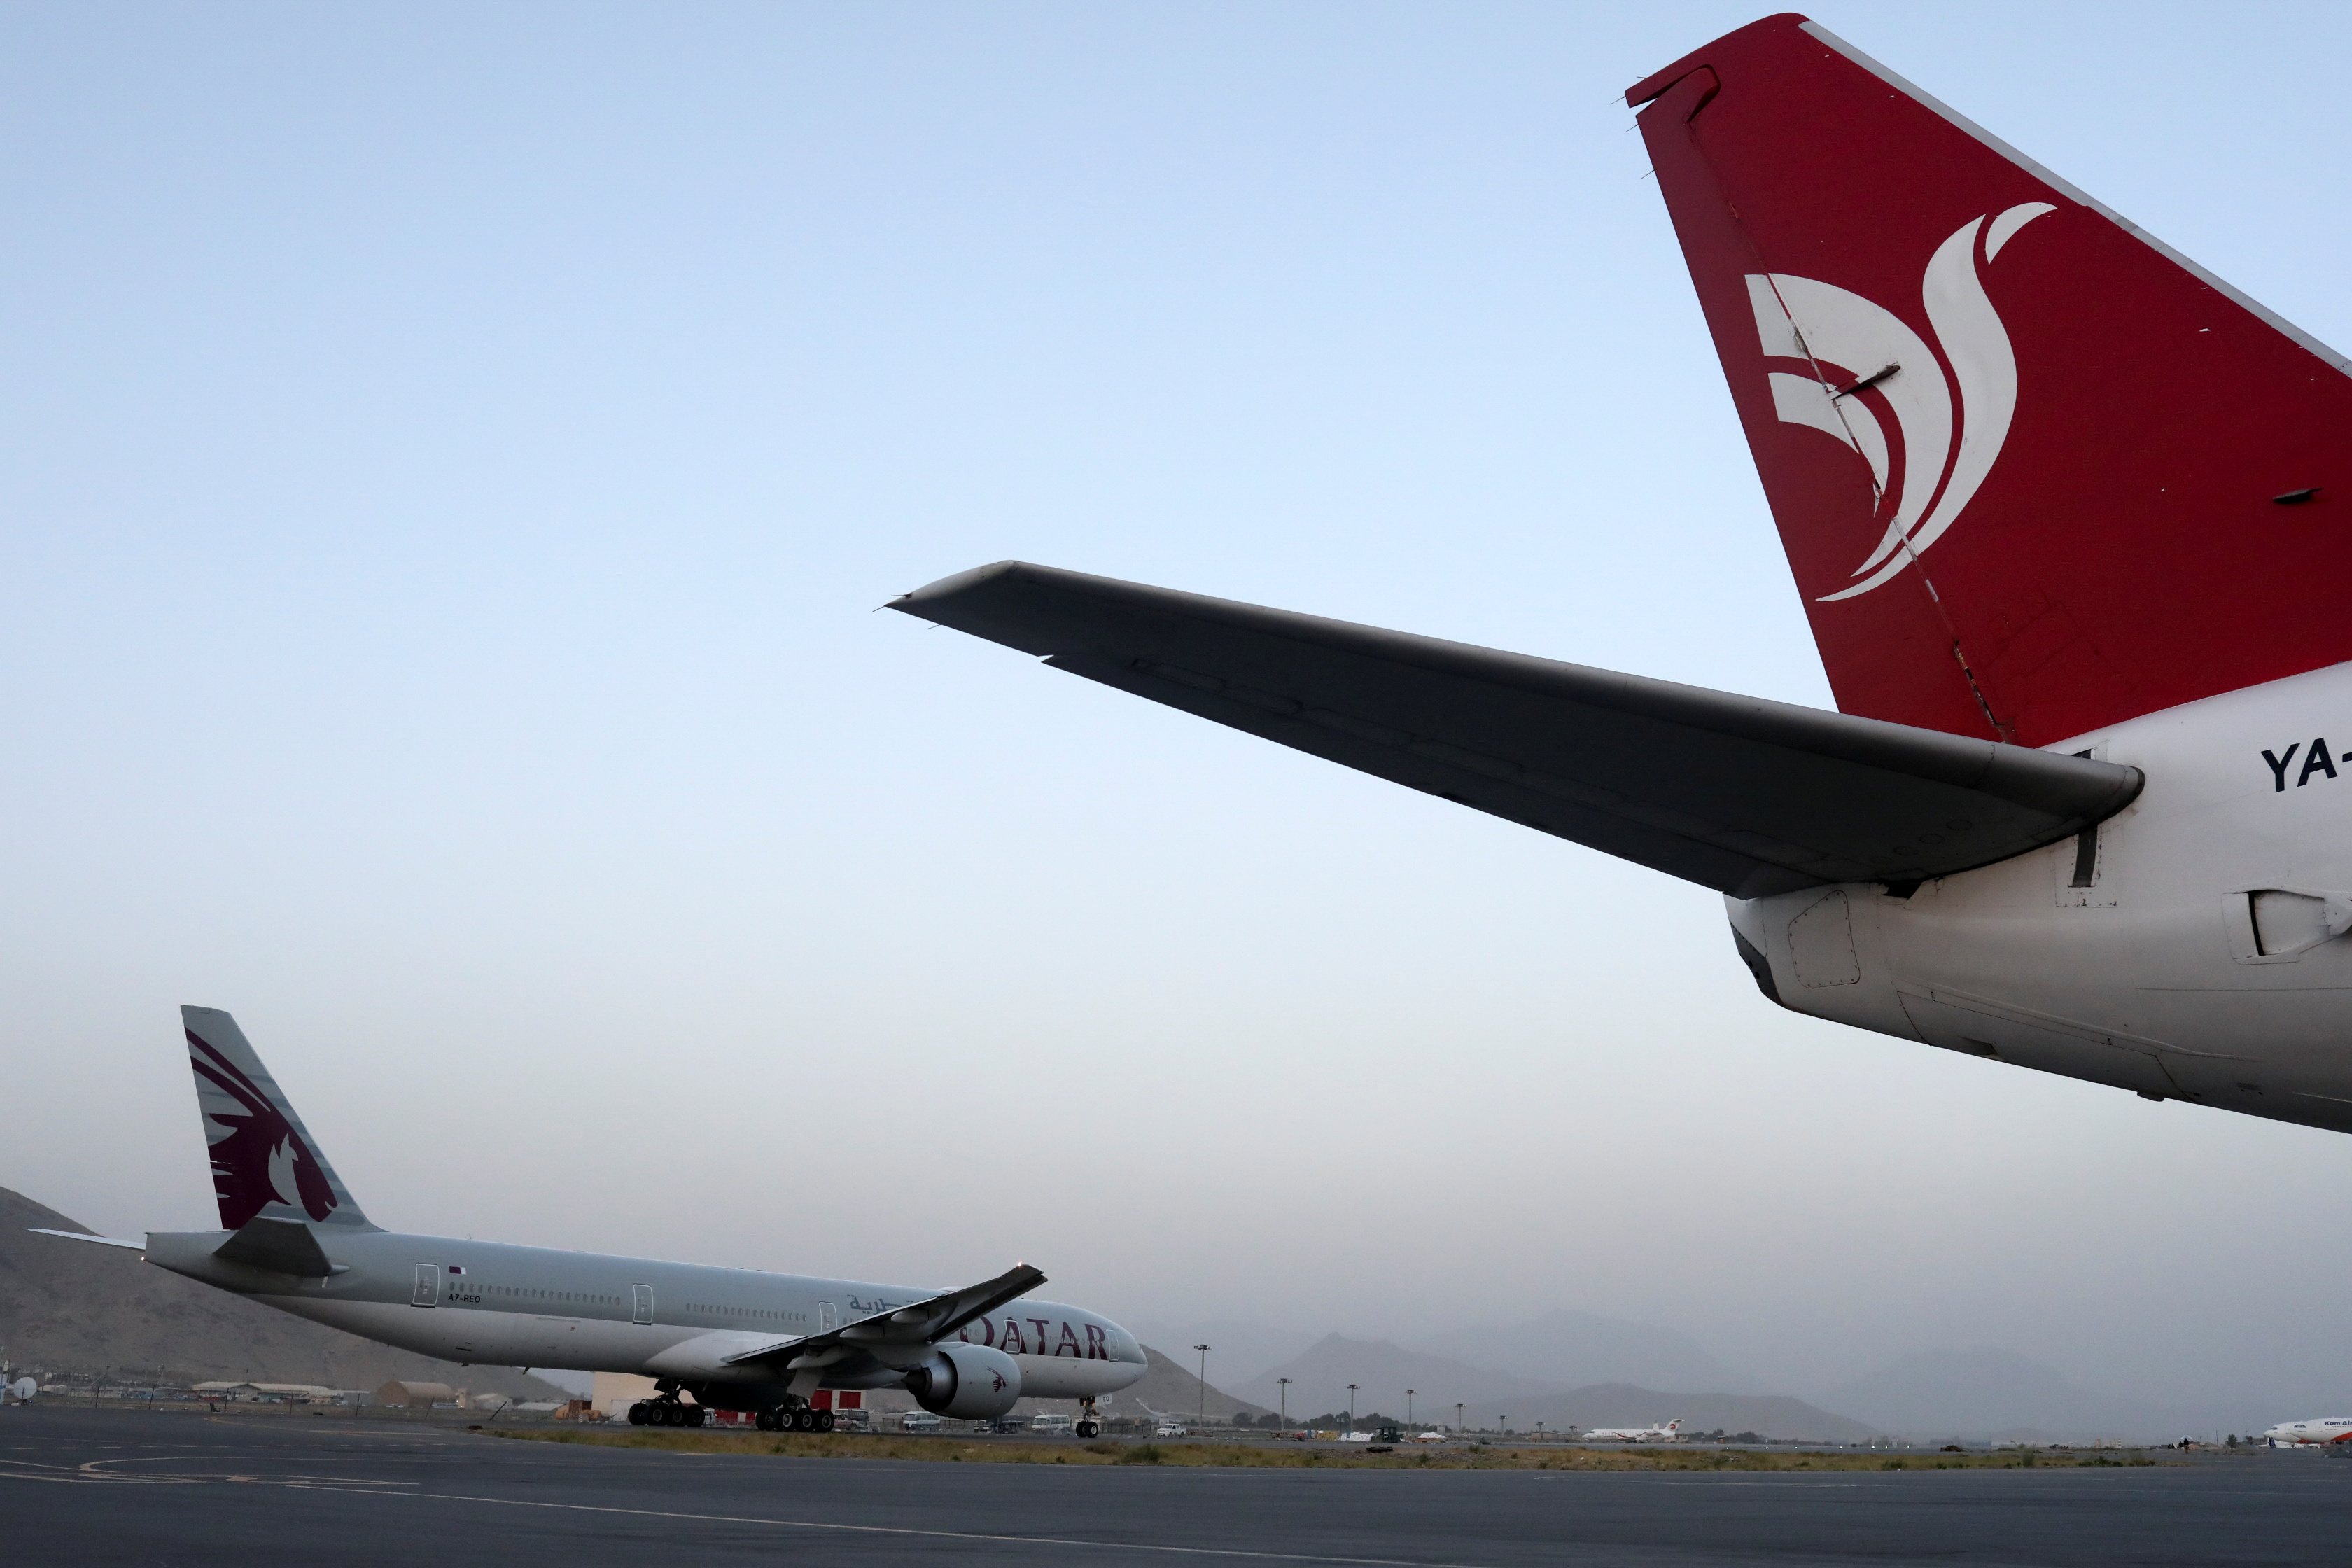 The first international flight from Kabul since the withdrawal of U.S. troops from Afghanistan taxis at the international airport in Kabul, Afghanistan, September 9, 2021. WANA (West Asia News Agency) via REUTERS